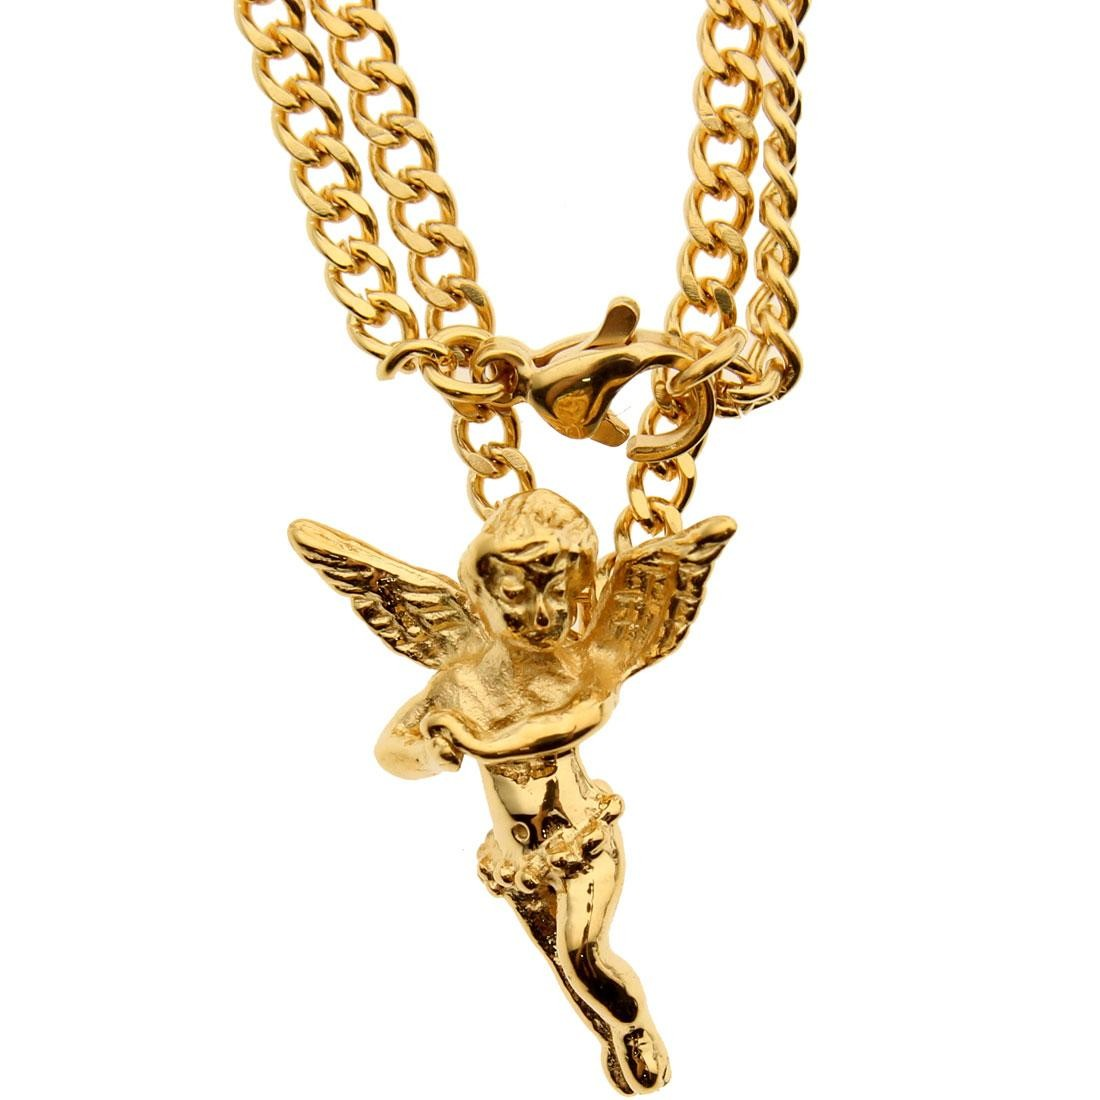 Veritas Aequitas Micro Angel Necklace (gold)